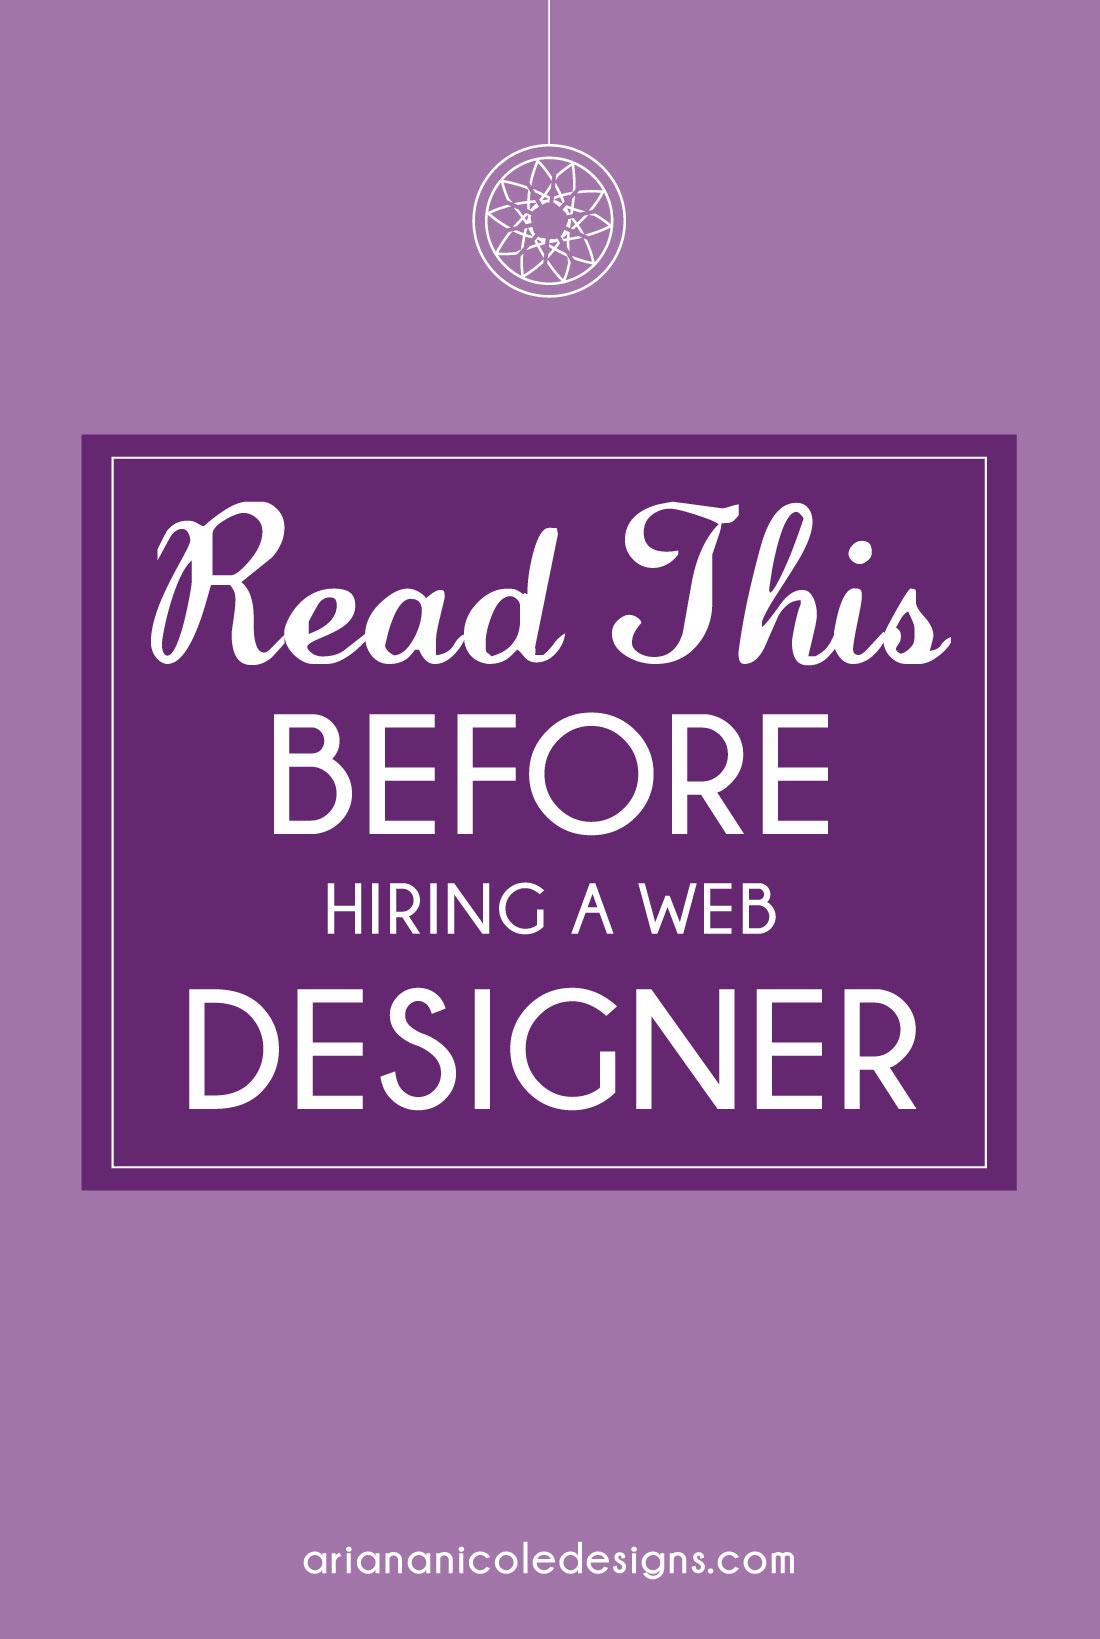 Read_This_Before_Hiring_A_Web_Designer